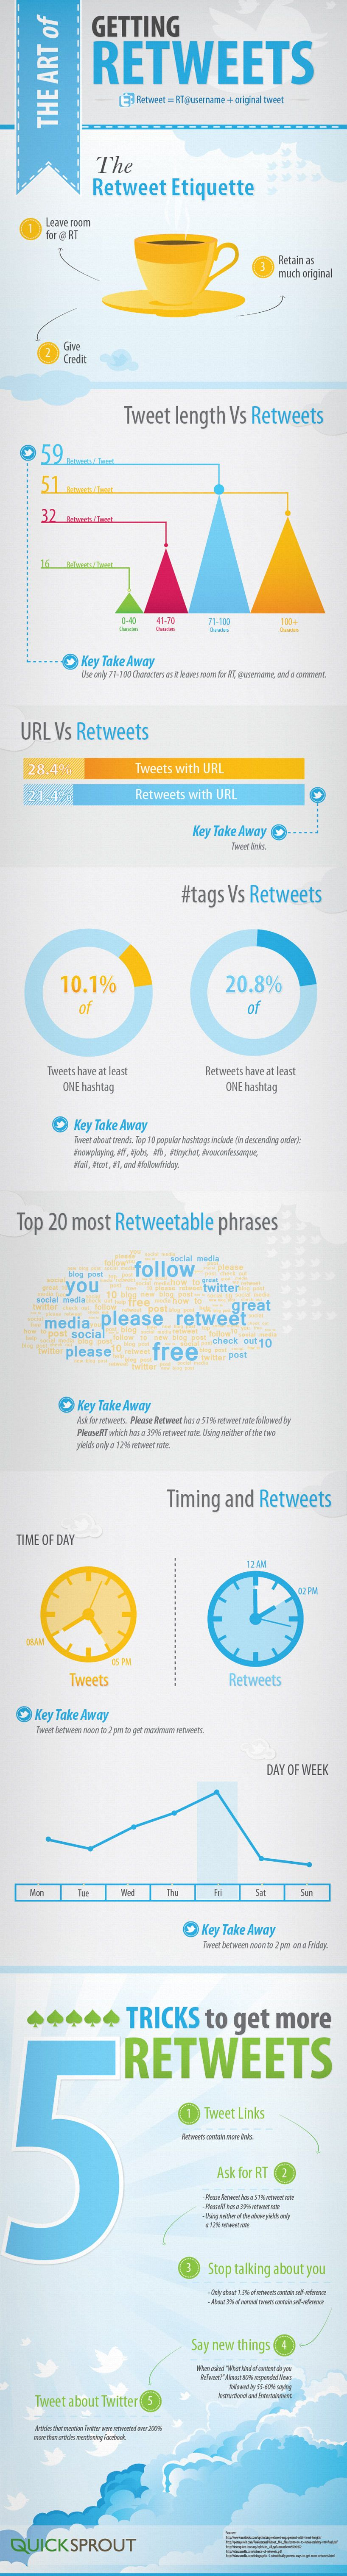 How To Get More Retweets [INFOGRAPHIC] - AllTwitter